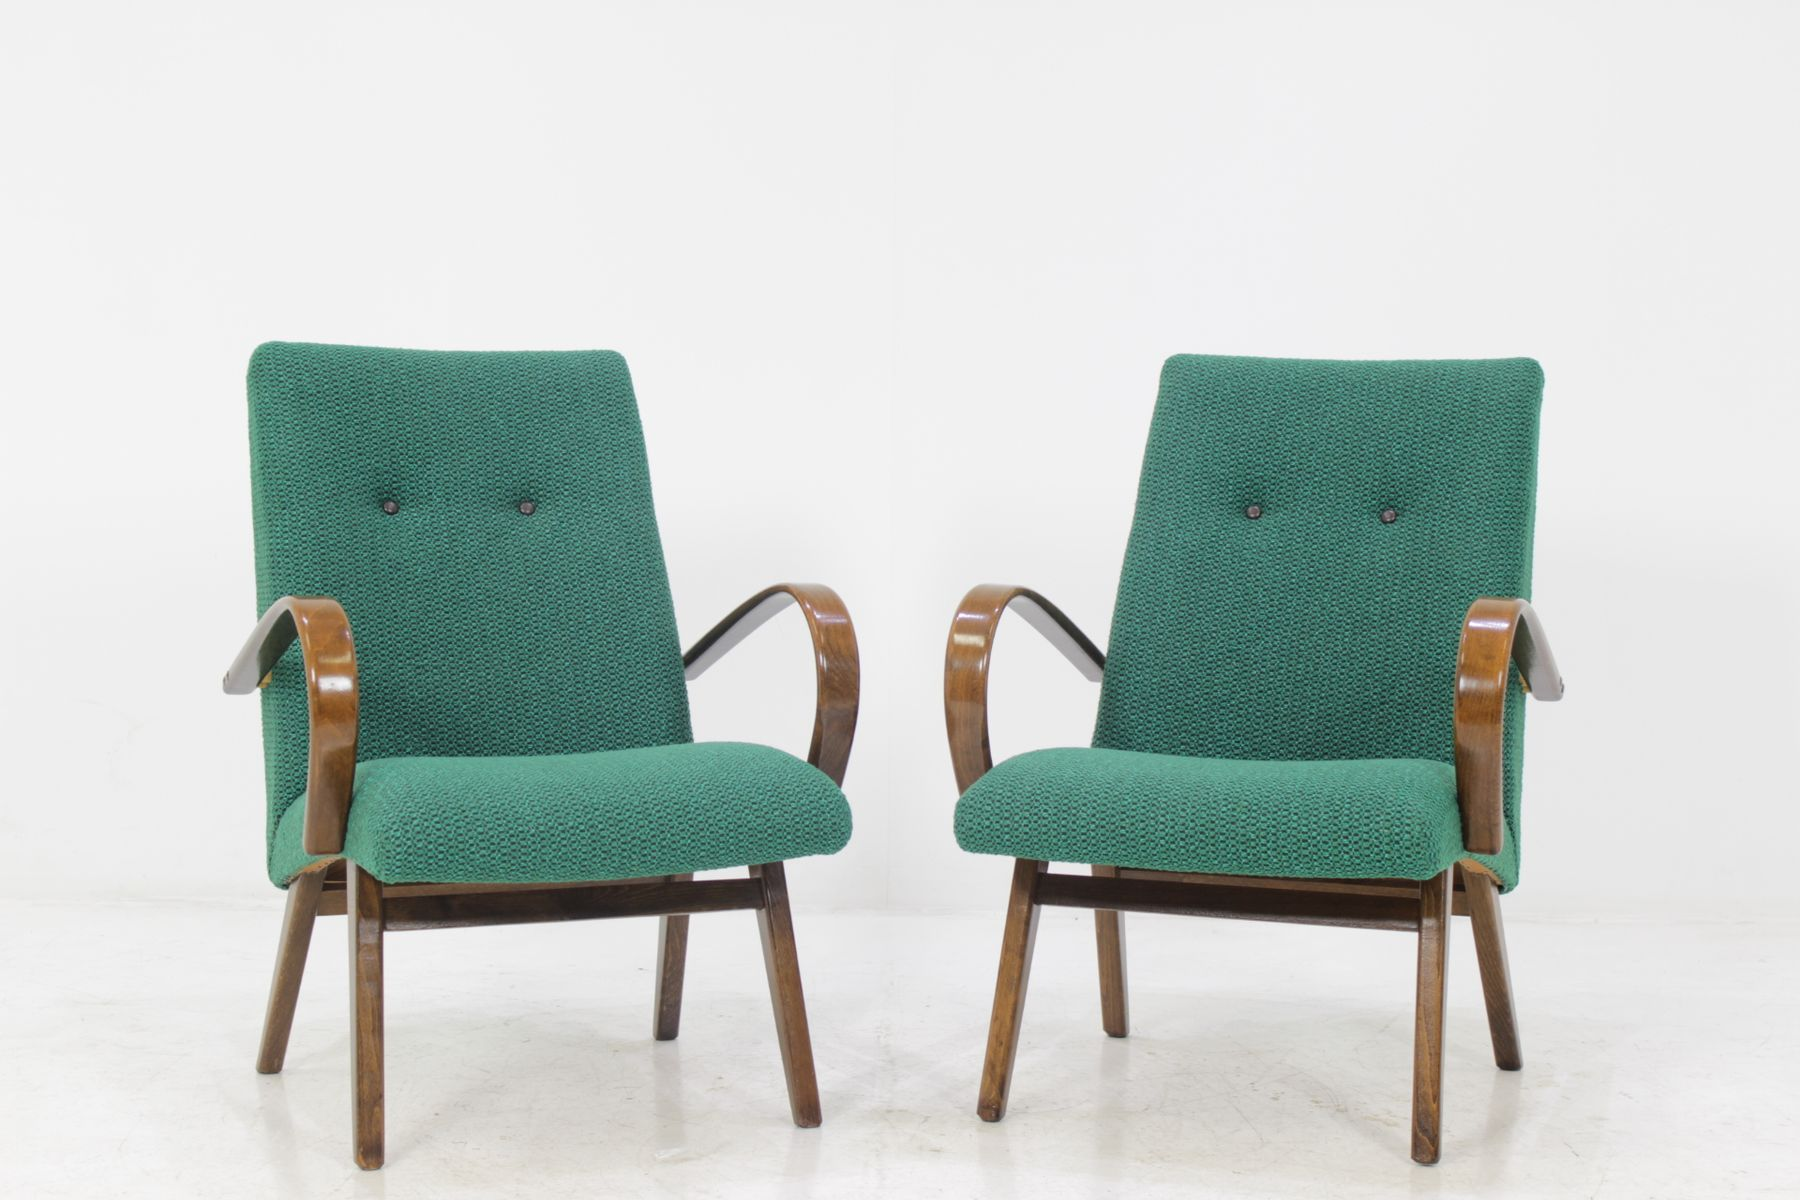 Superior Bentwood Lounge Chair From Ton, 1960s